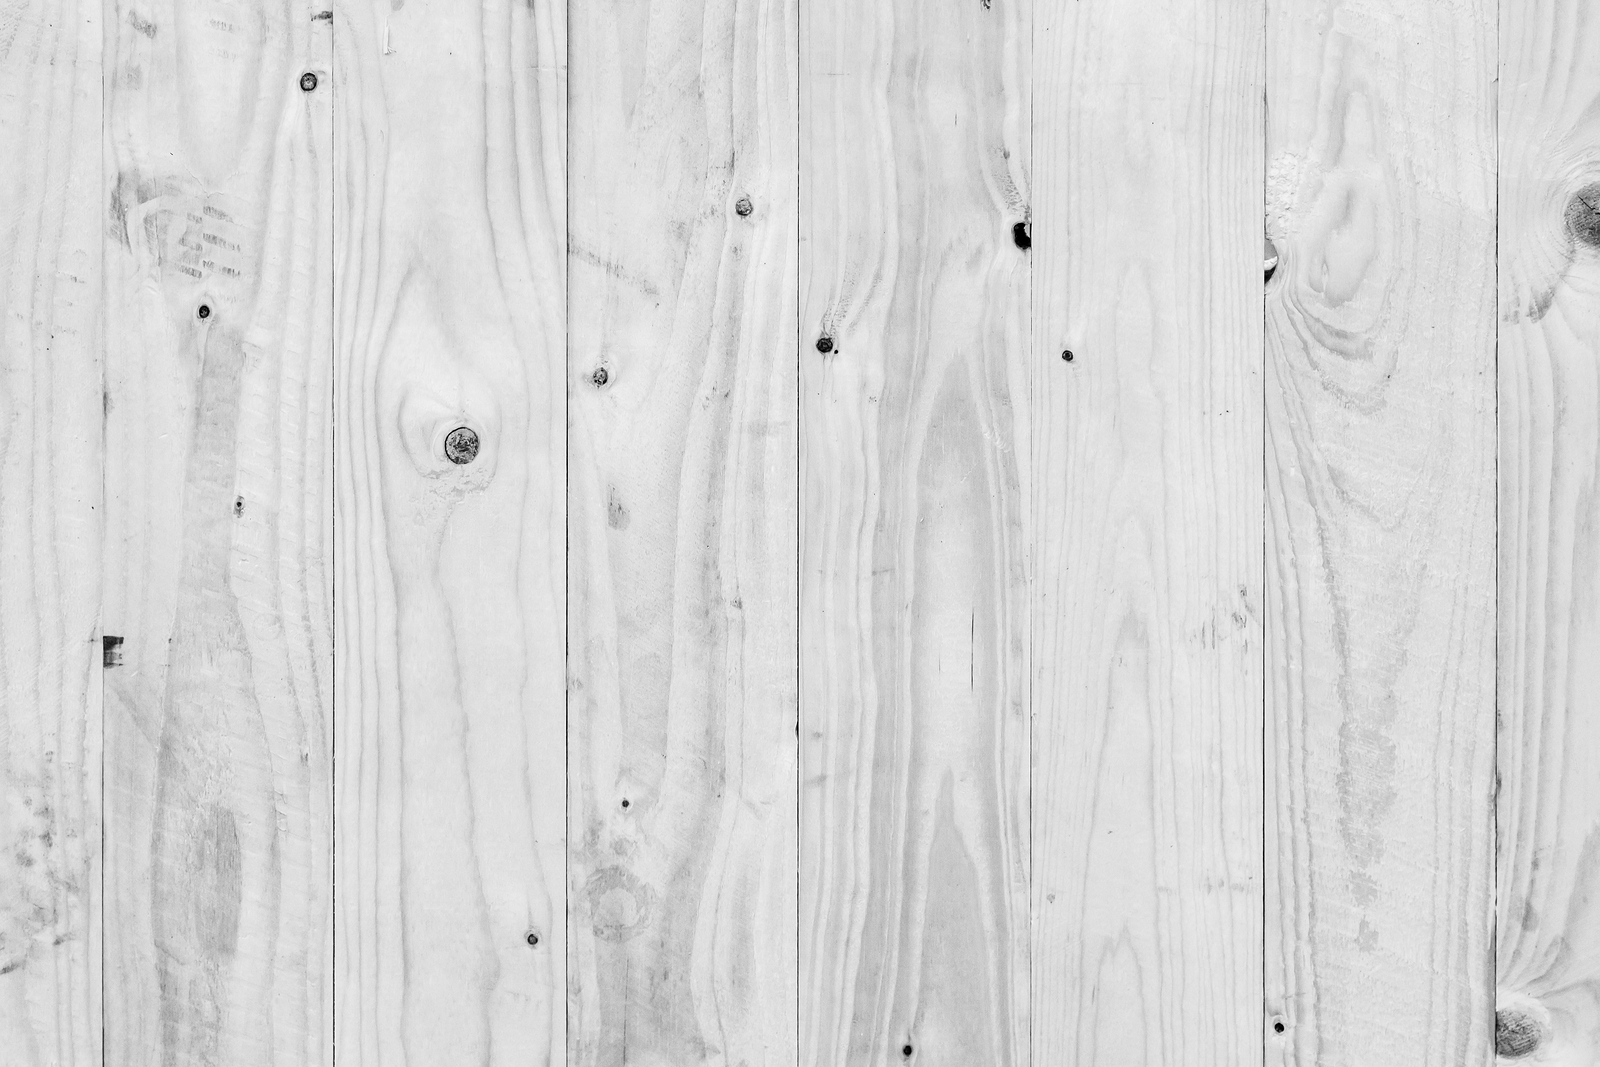 Grunge White Wood And Rustic Background Texture